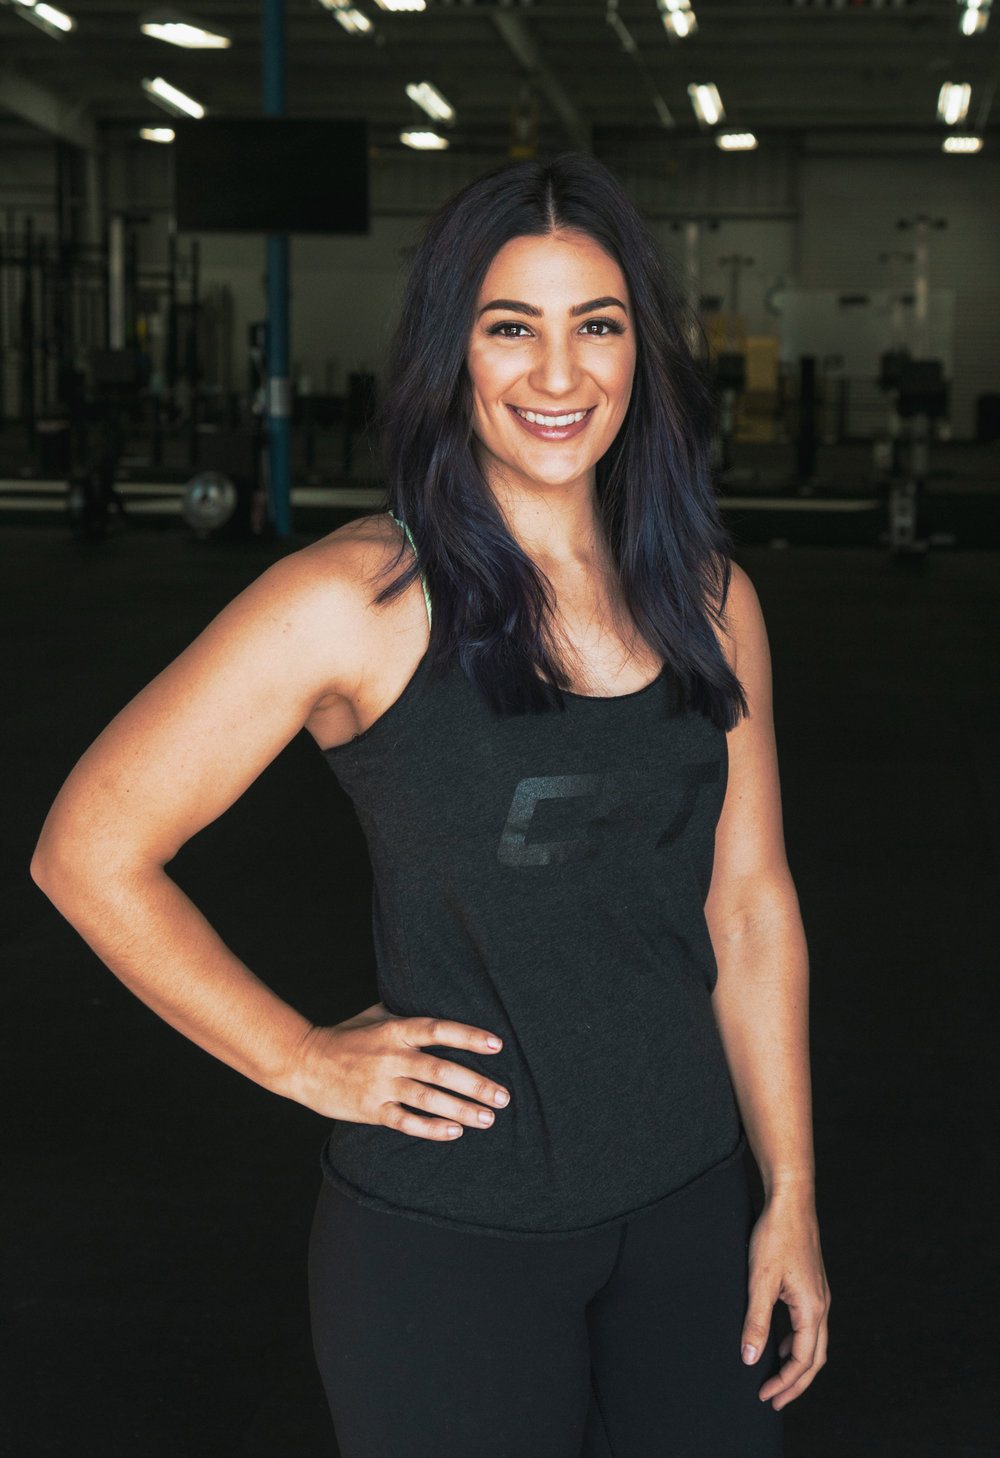 Hi! My name is Nicole Webster. - I love CrossFit and it's huge part of my life. Naturally I wanted to be apart of the community that has completely changed my life in the most positive and profound way, in hopes of helping someone else change theirs.Fun fact, 80% of my text message responses are GIFs.If you're thinking about joining, just do it! You'll be surrounded by so many people who share the same goals! Plus you'll make some life long friends along the way.